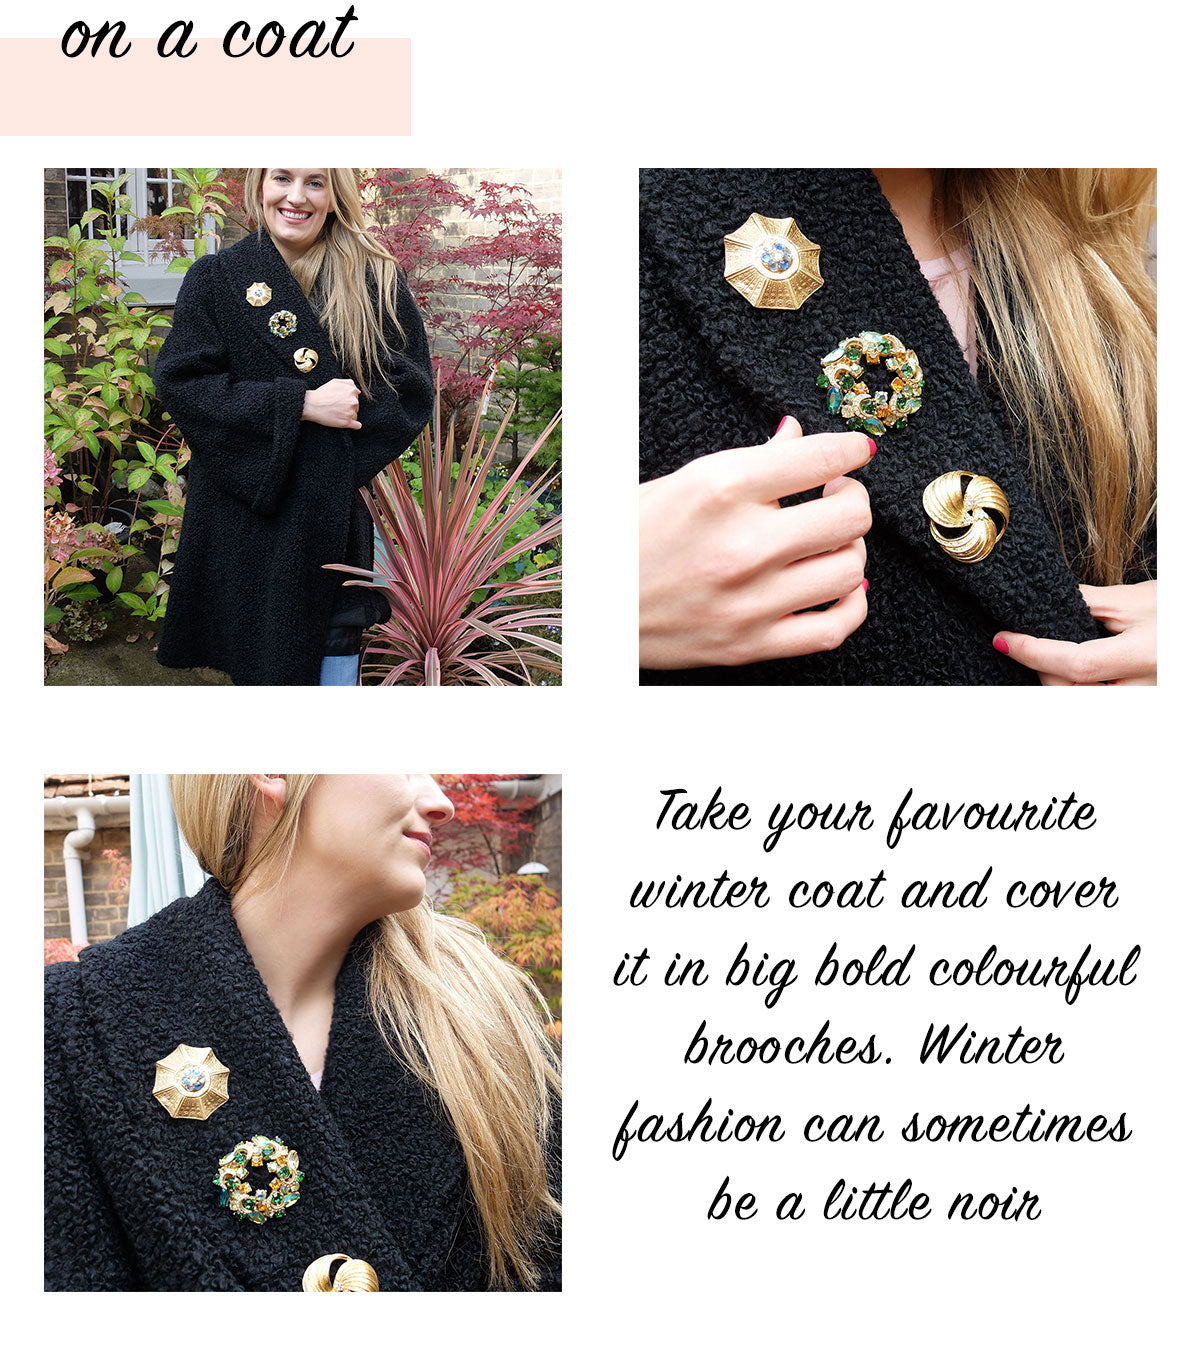 Vintage Brooch on a Coat